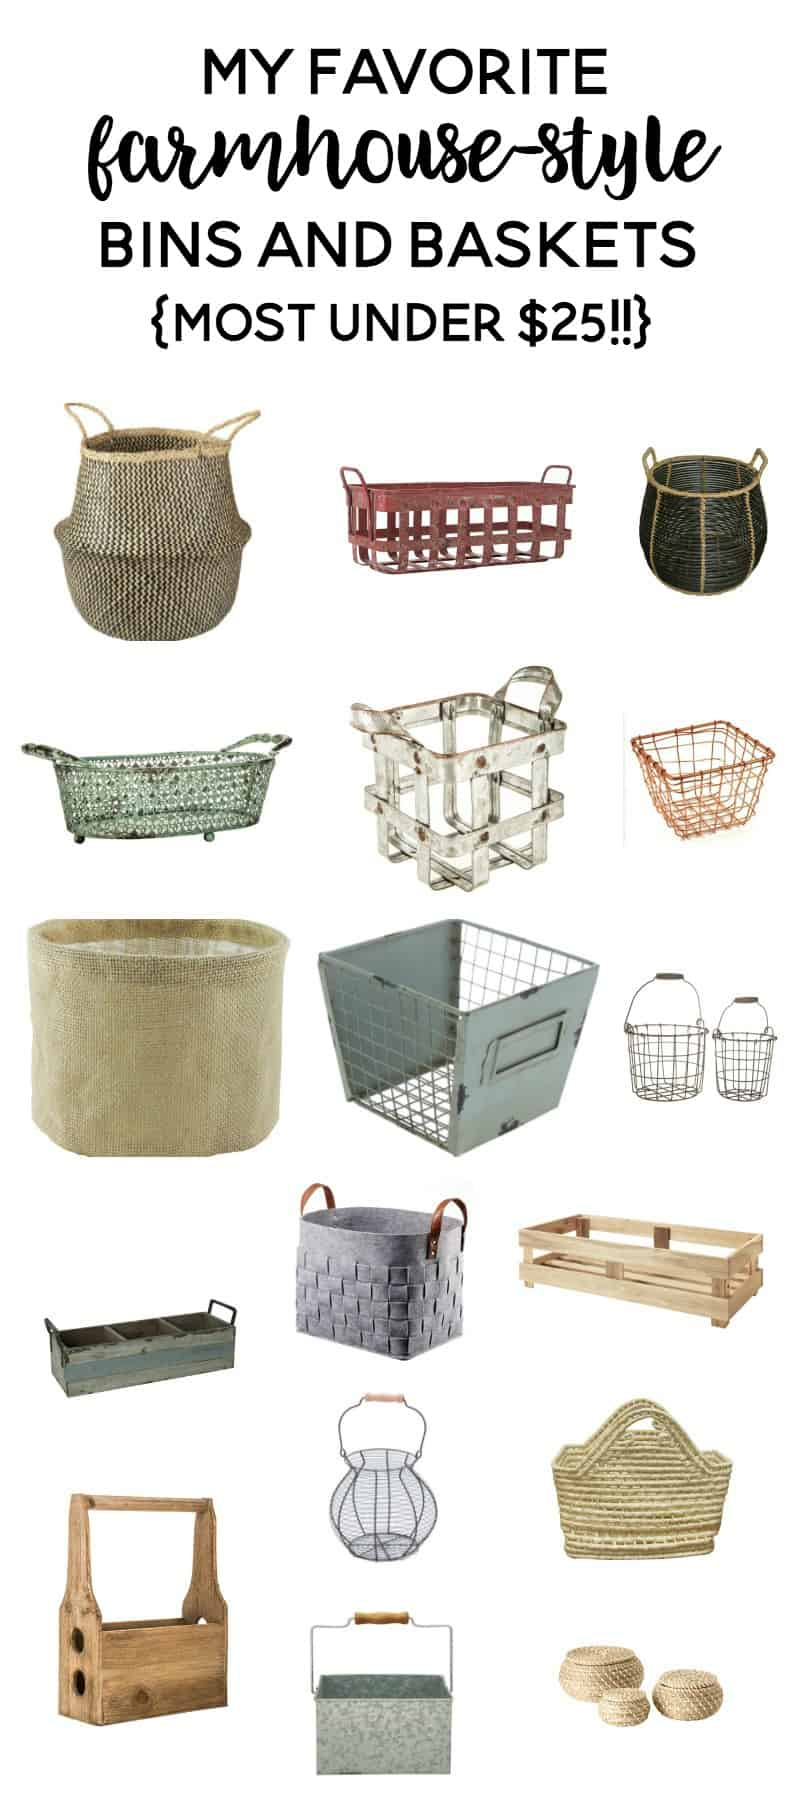 my favorite farmhouse-style bins and baskets {most under $25!!} - You can't beat this list of rustic, fixer upper and farmhouse bins and baskets that are budget friendly and instantly add style and character to your home!